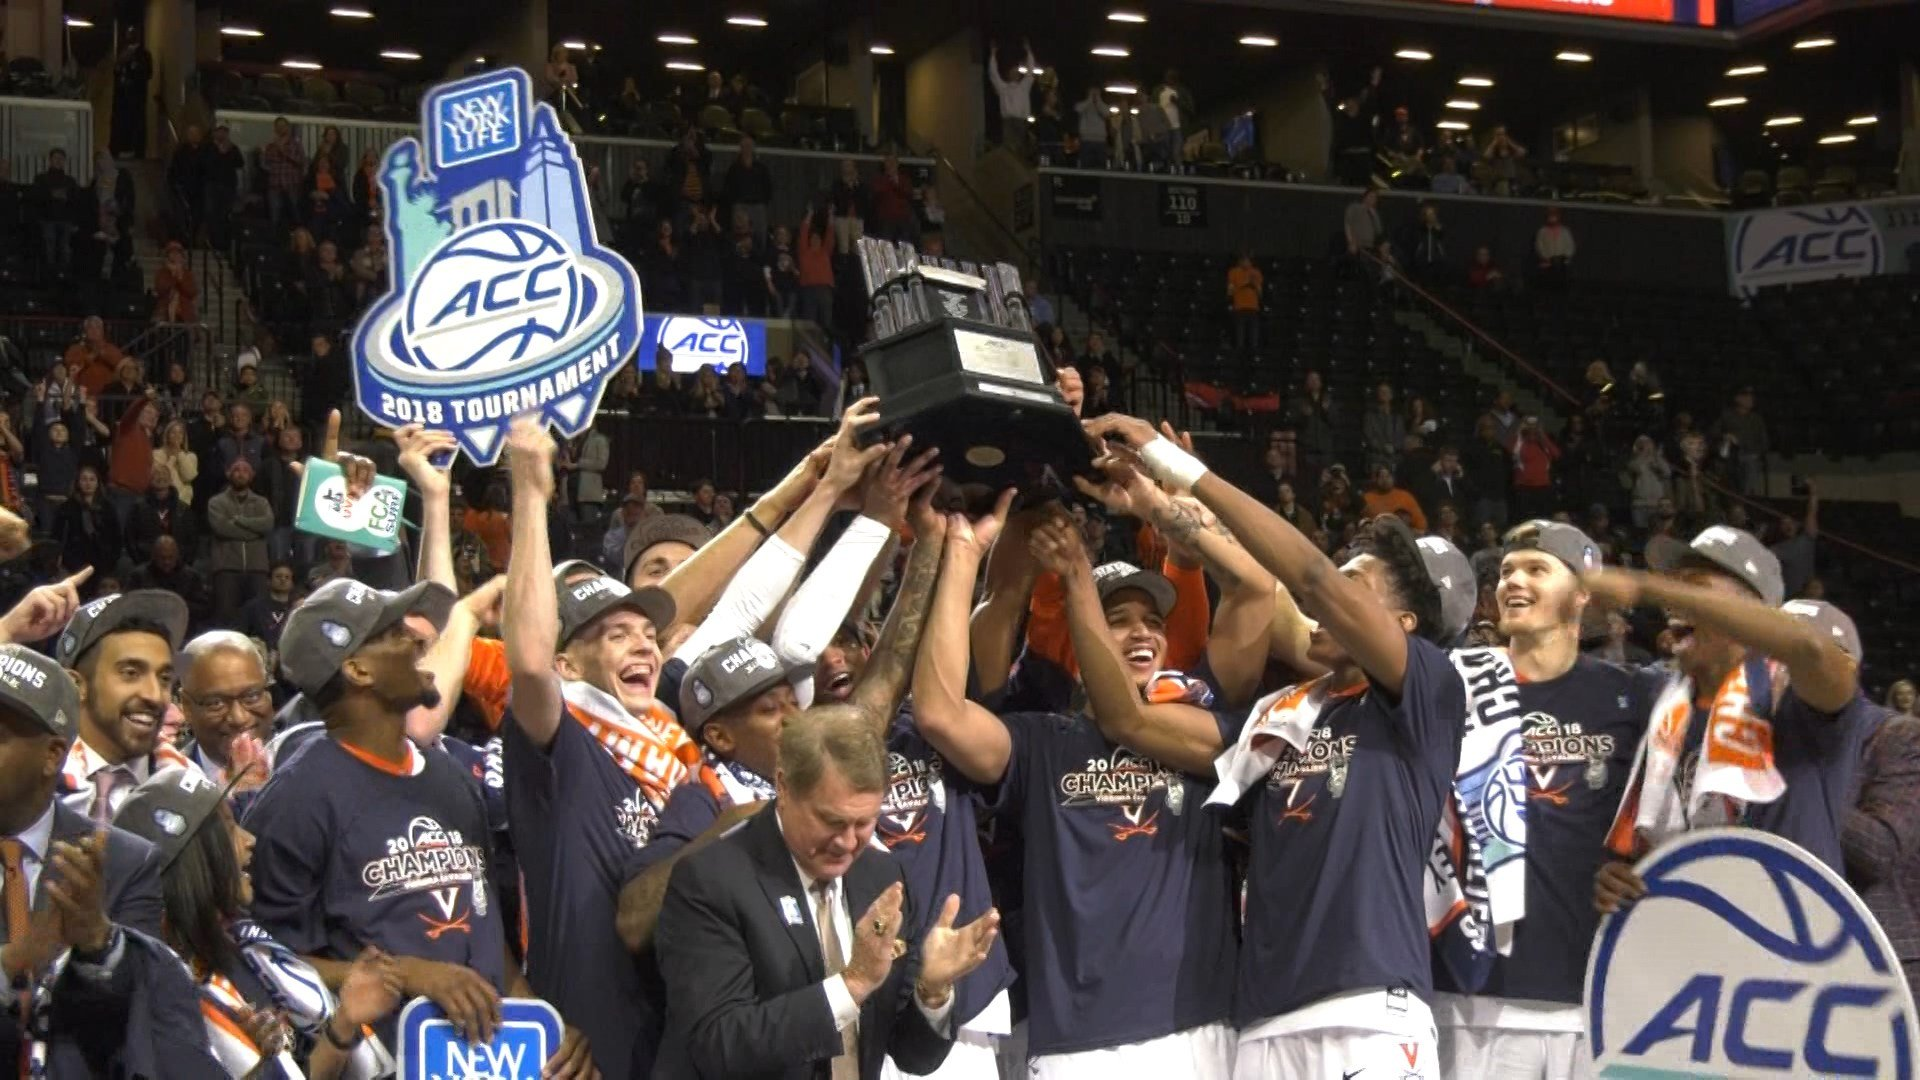 Virginia captured its 3rd ACC Tournament title in Brooklyn this past Saturday